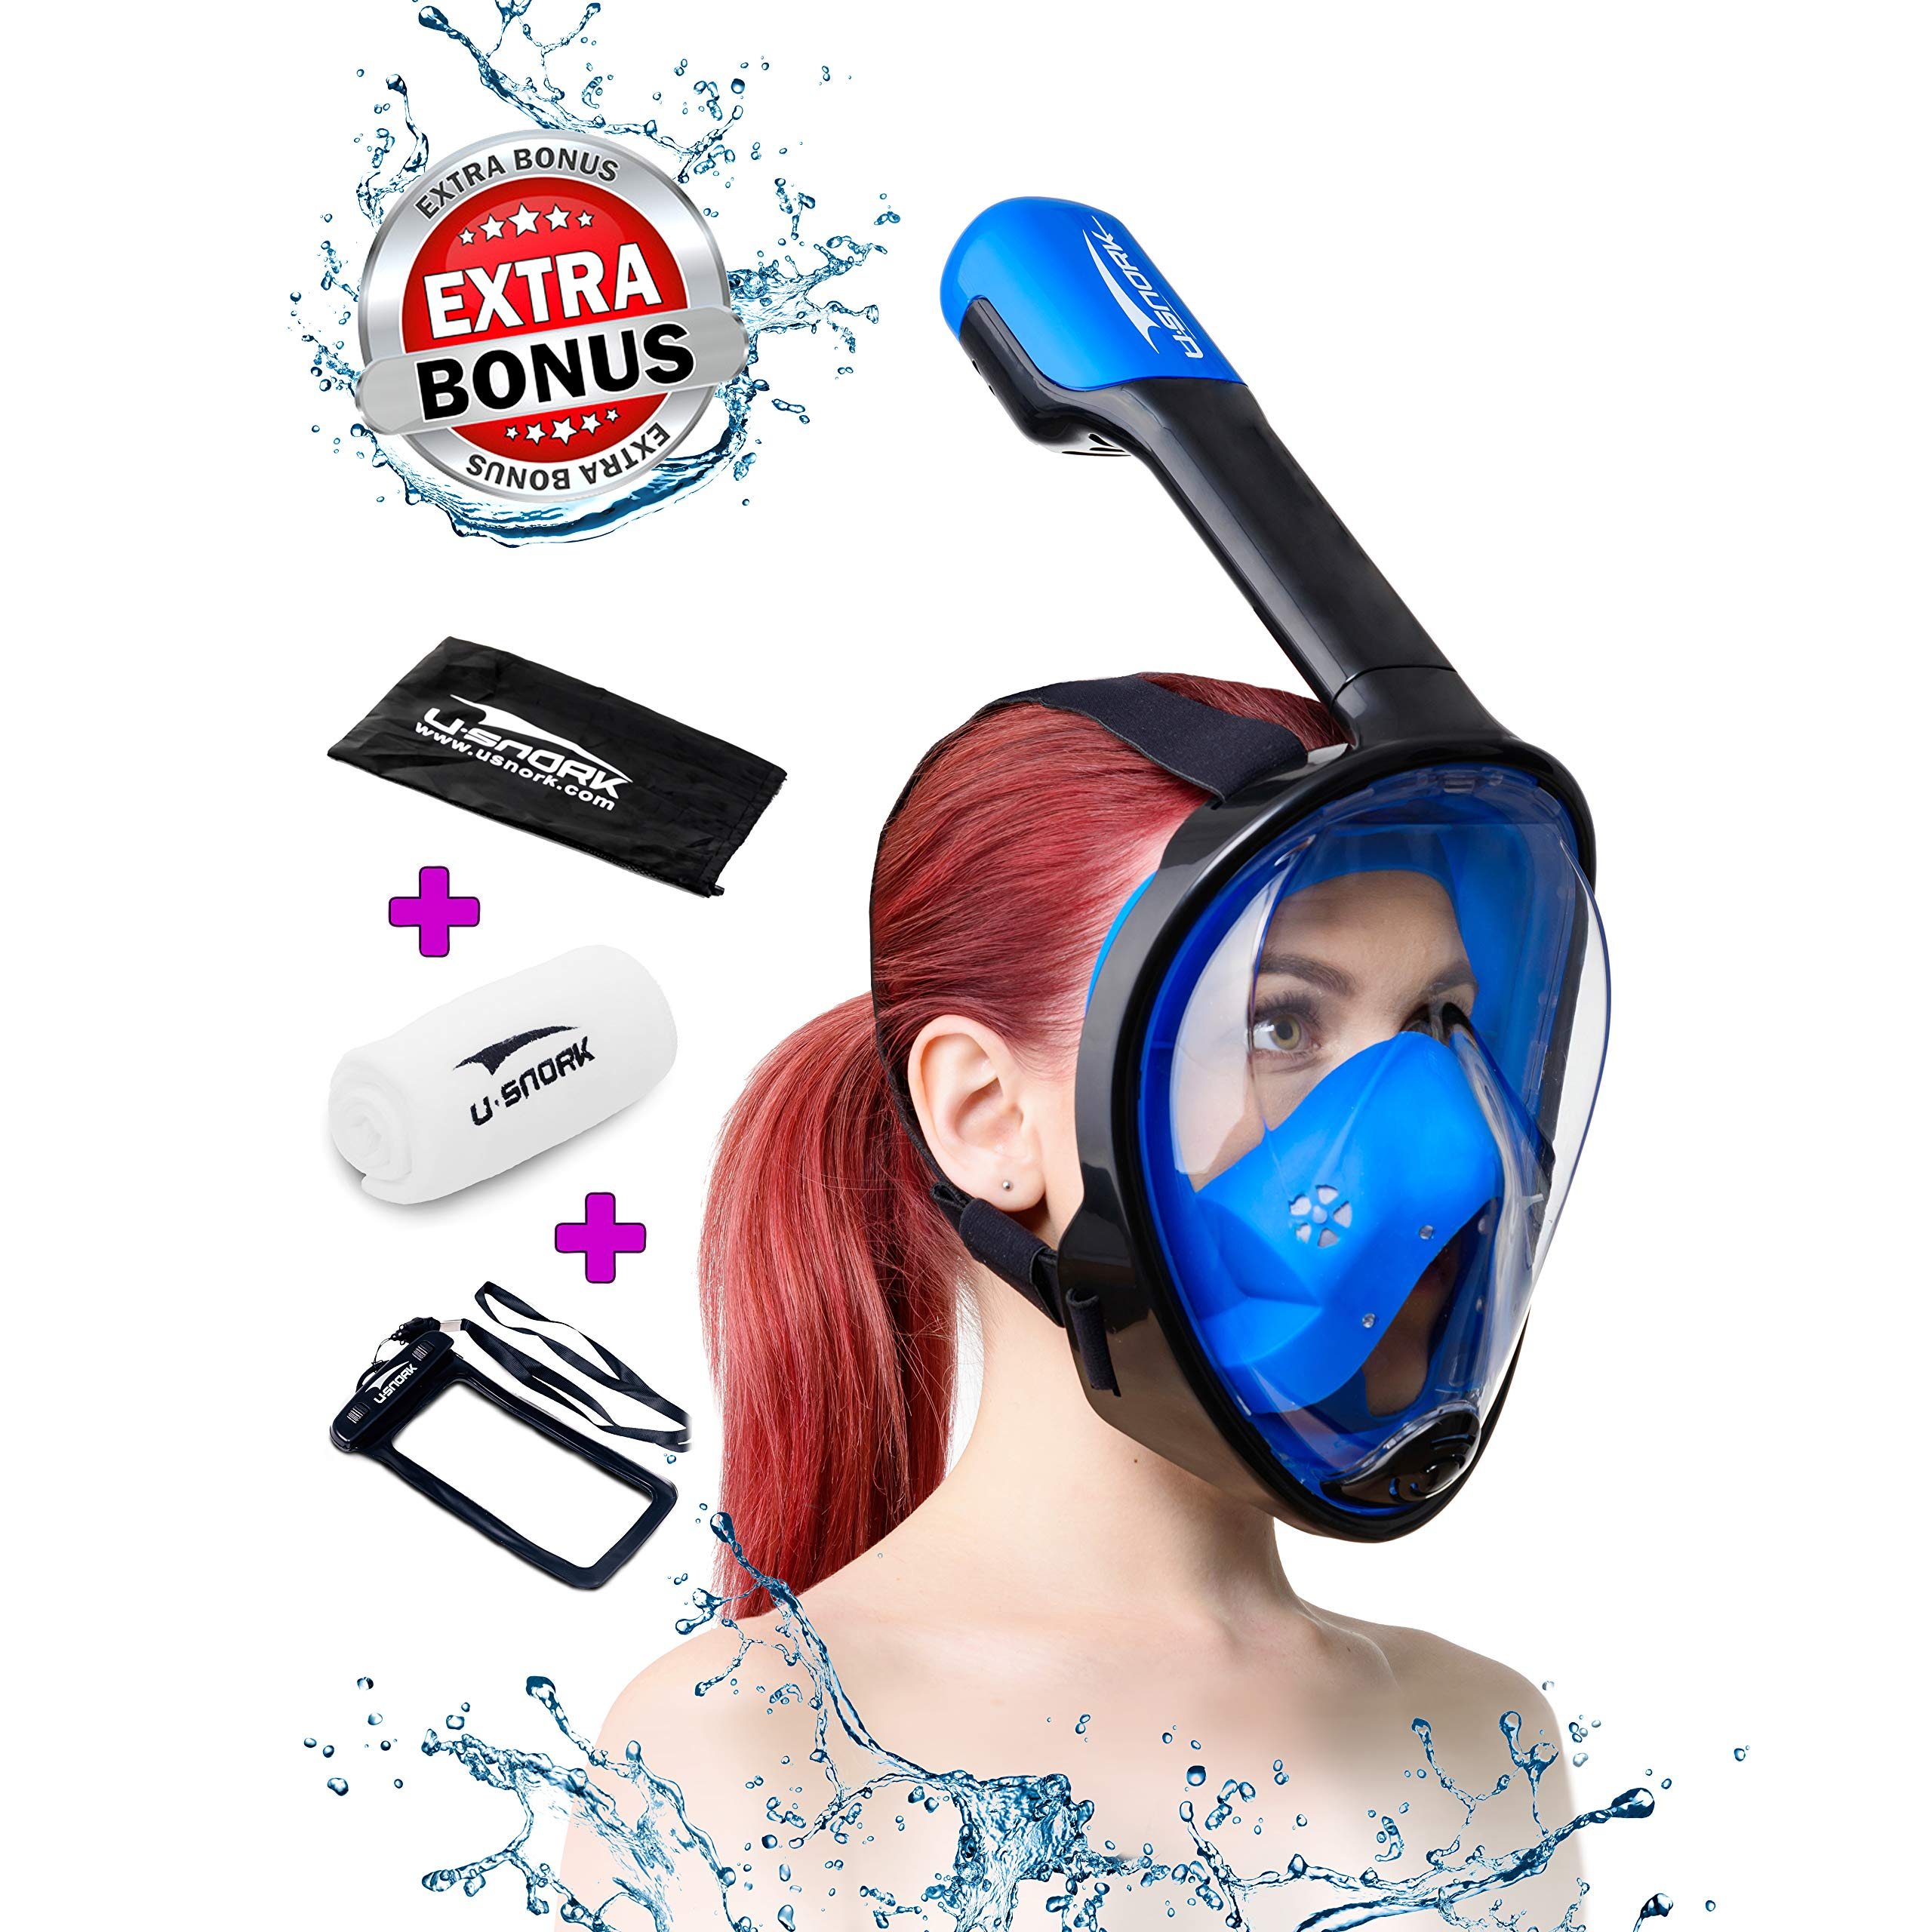 Usnork Full Face Snorkel Mask for Kids and Adults - Snorkel Set with 4 Bonus Items - Anti-Fog and Anti-Leak Easybreath Snorkeling Gear - Dive Scuba Mask with 180 Panoramic View (Black-Blue, S/M)